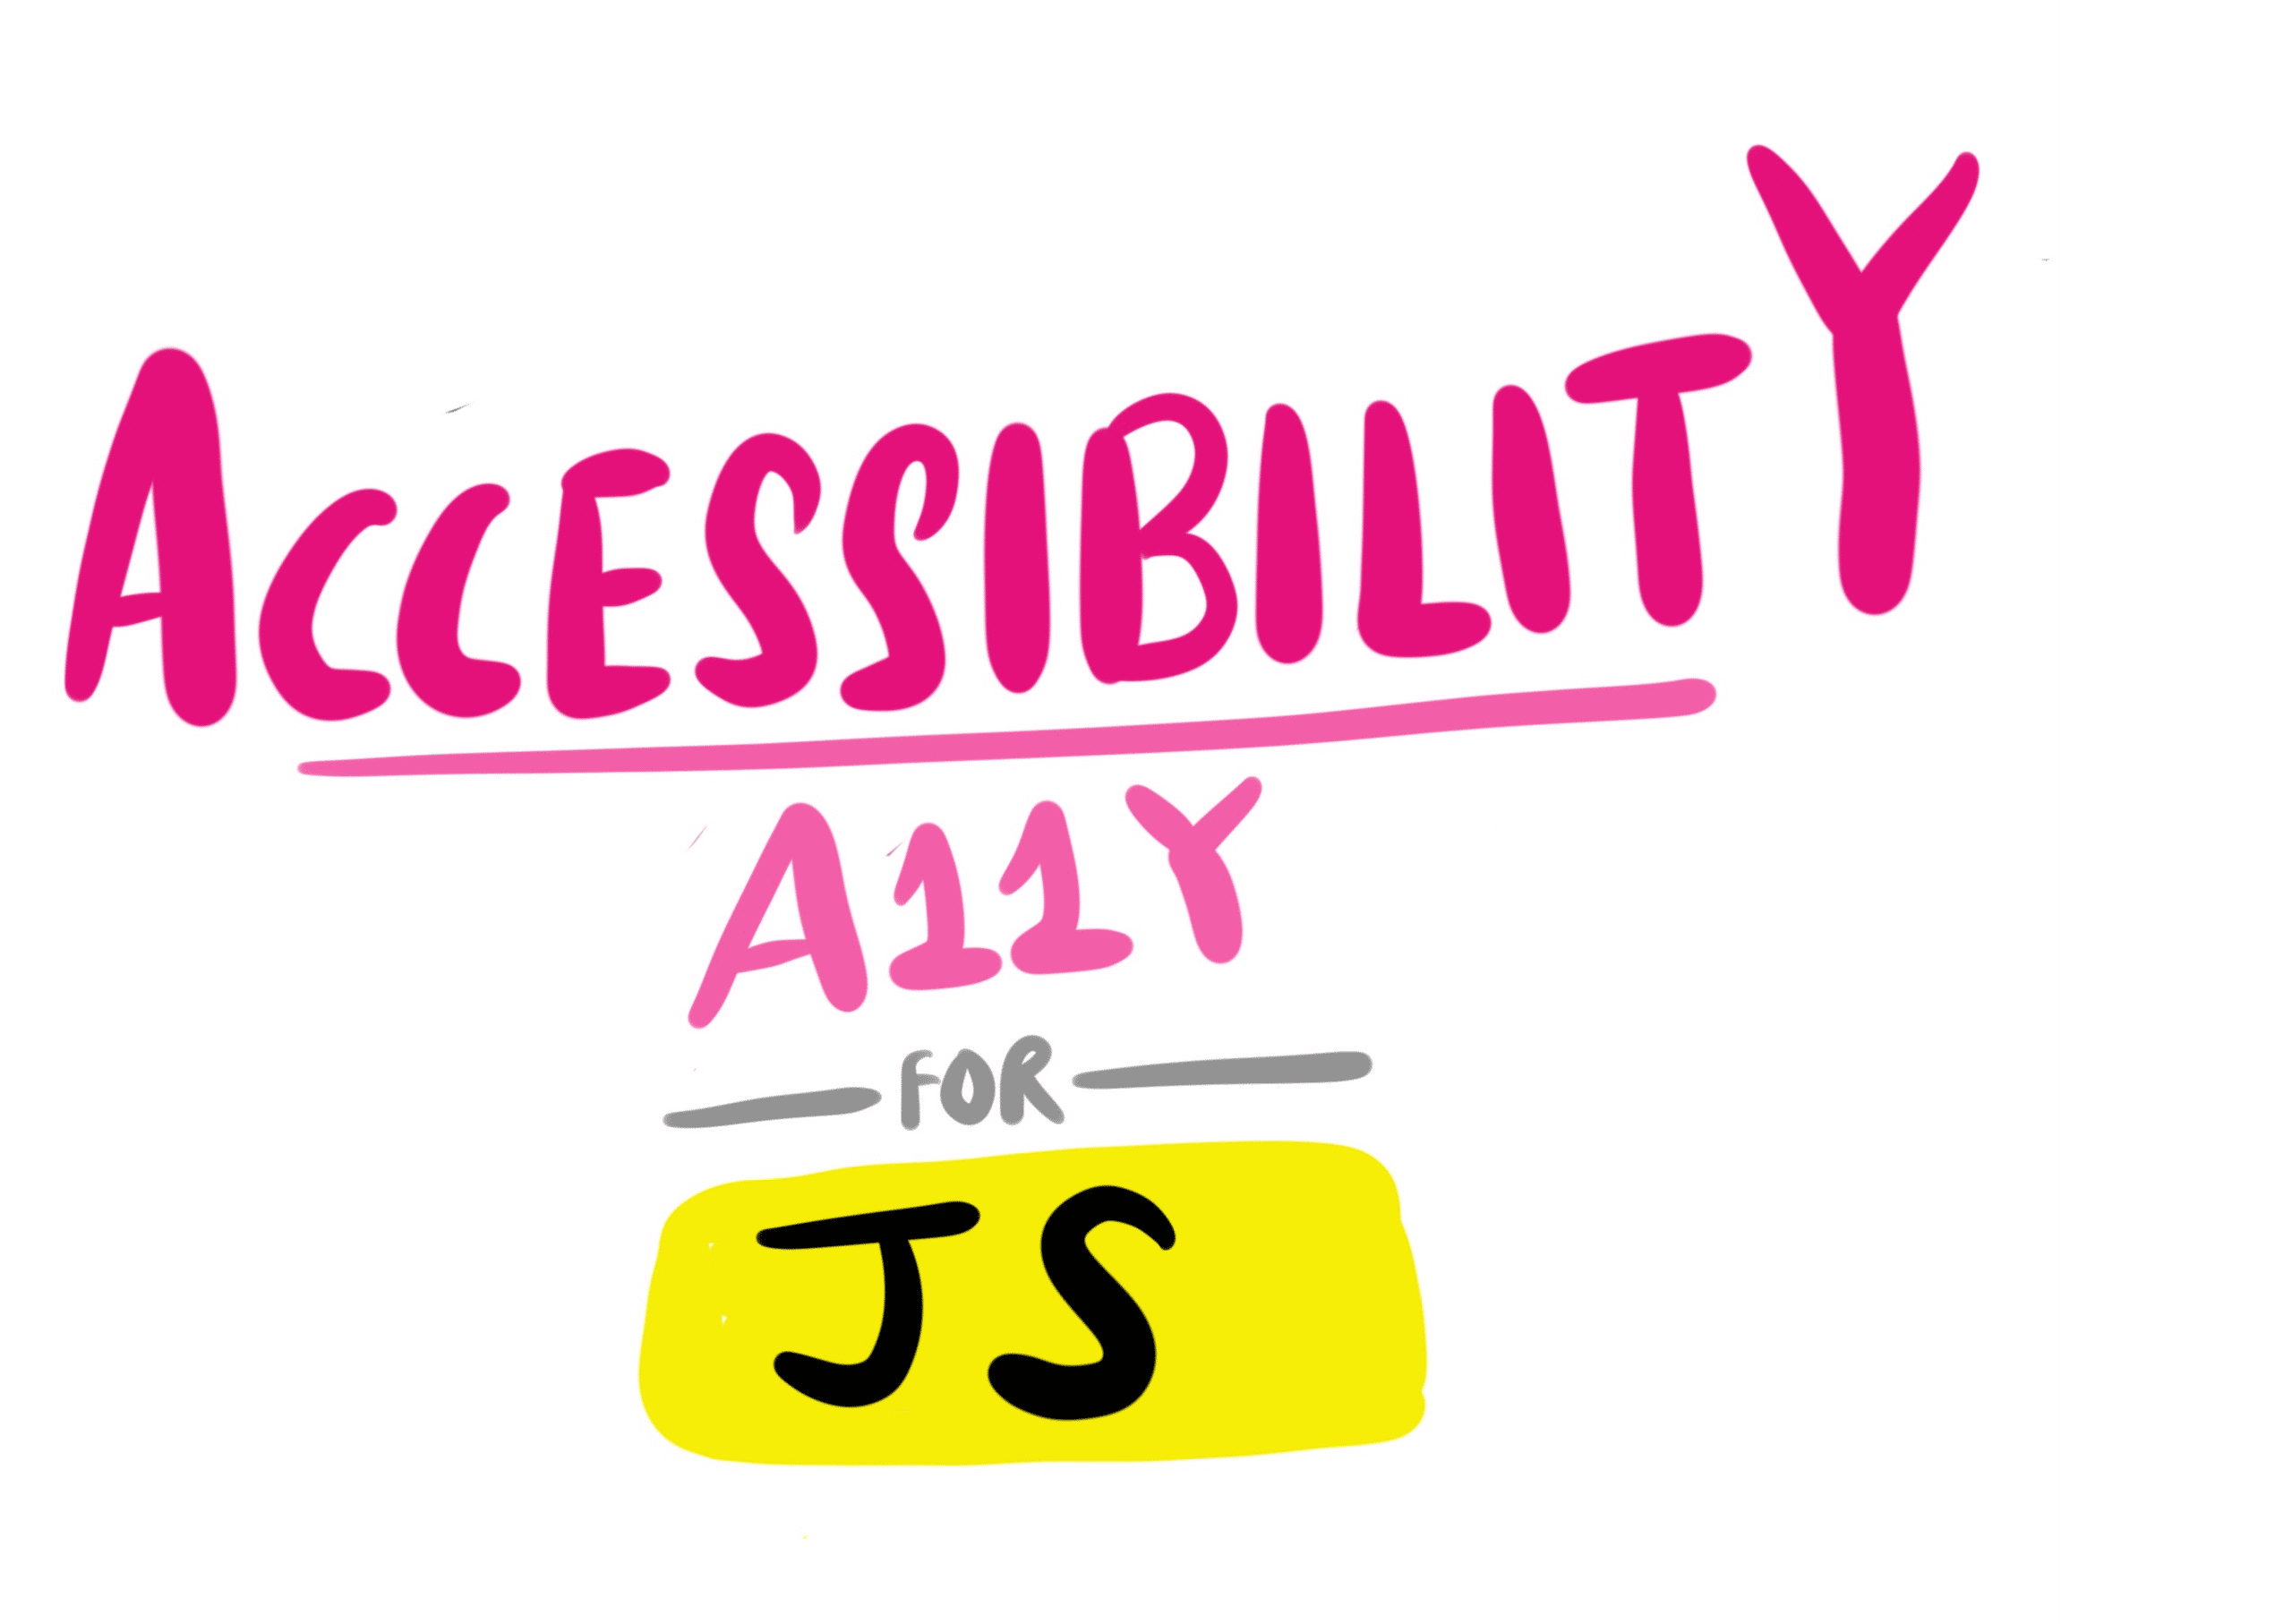 Accessibility For JS Apps